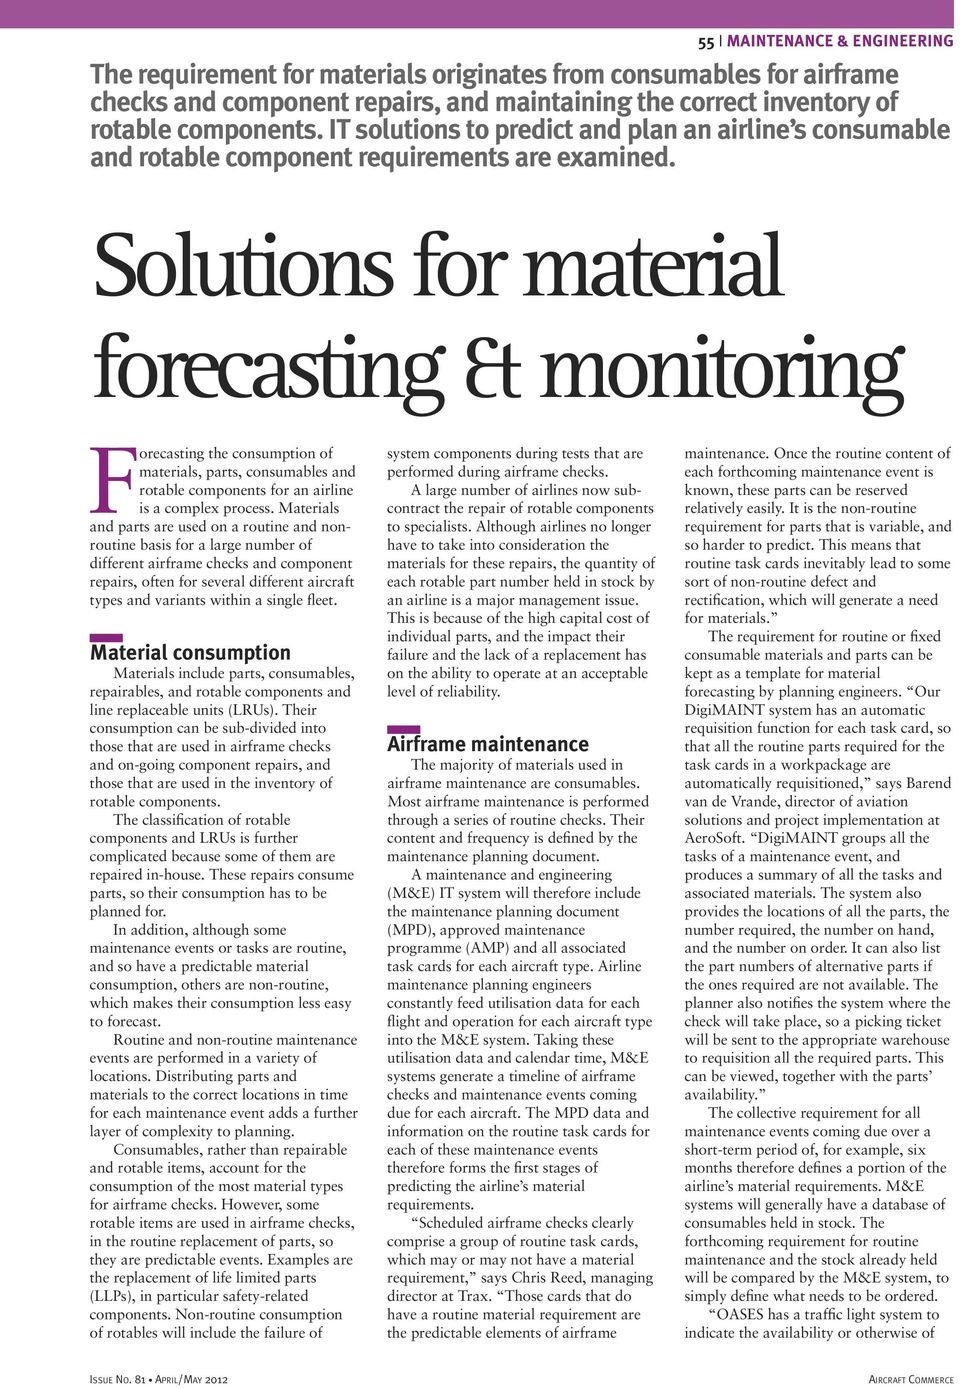 Solutions for material forecasting & monitoring Forecasting the consumption of materials, parts, consumables and rotable components for an airline is a complex process.